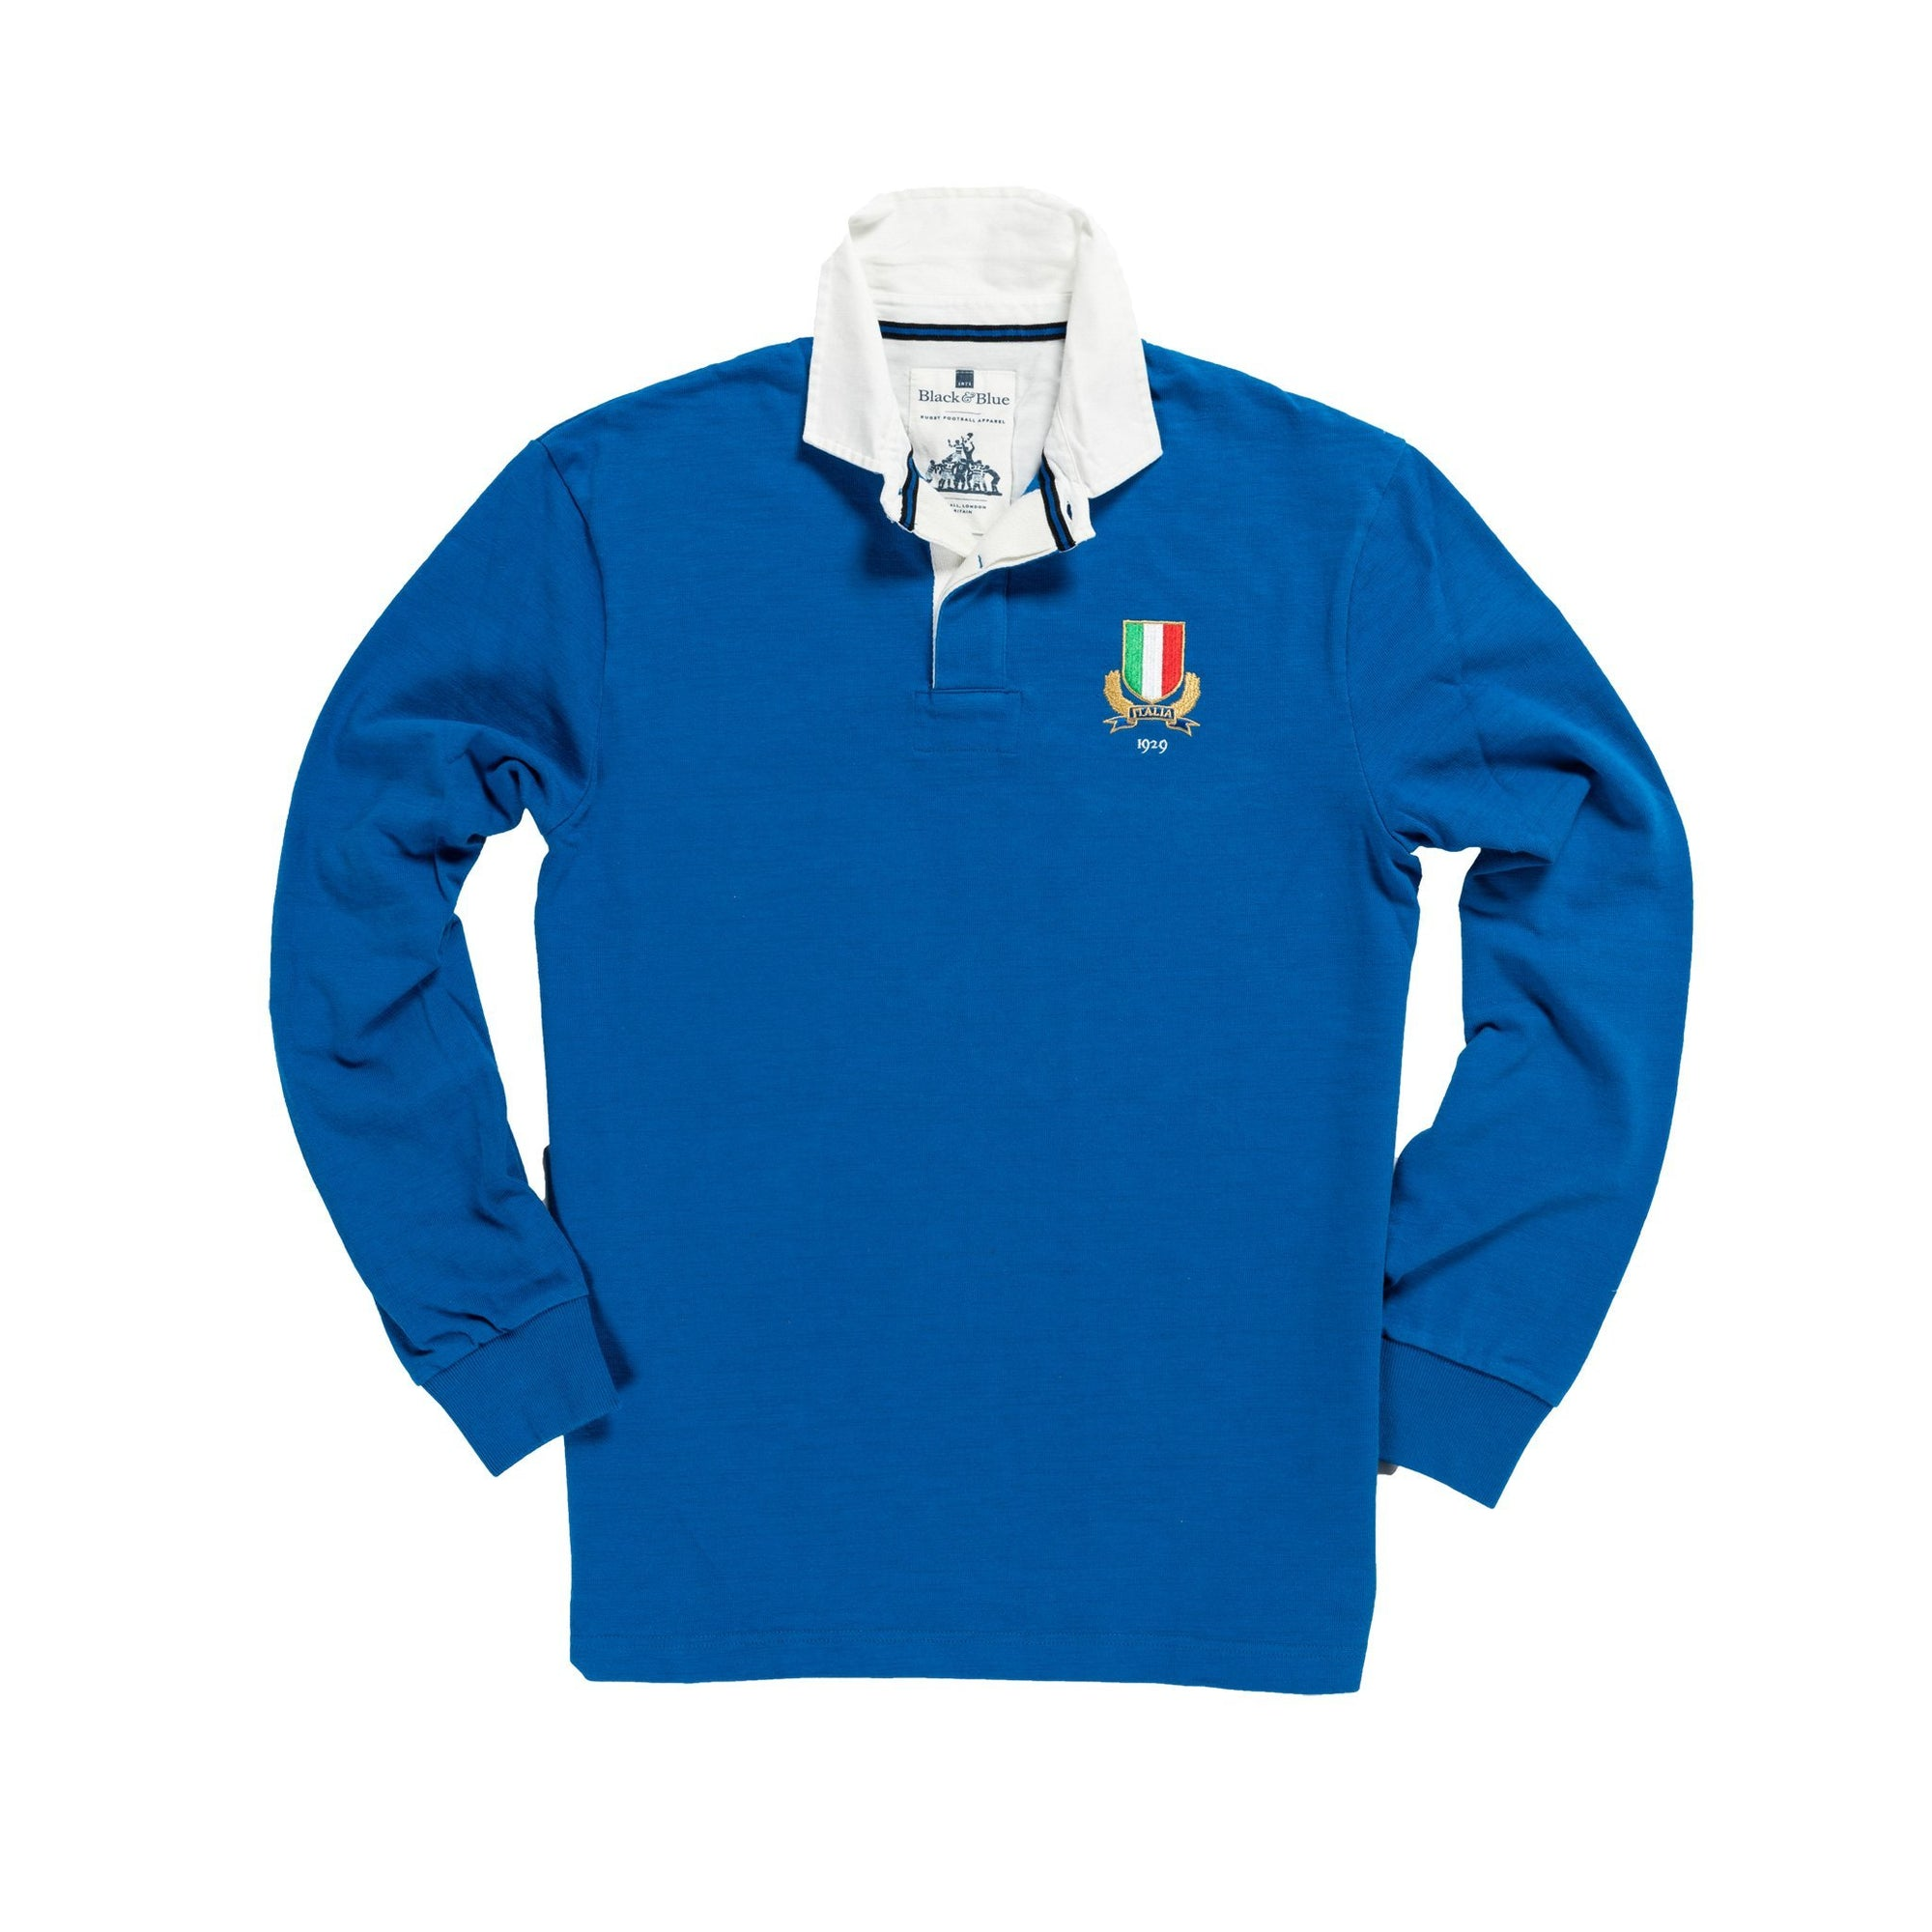 Vintage, Classic Cotton Rugby Shirt | Black & Blue 1871 | Italy 1929 Rugby Shirt